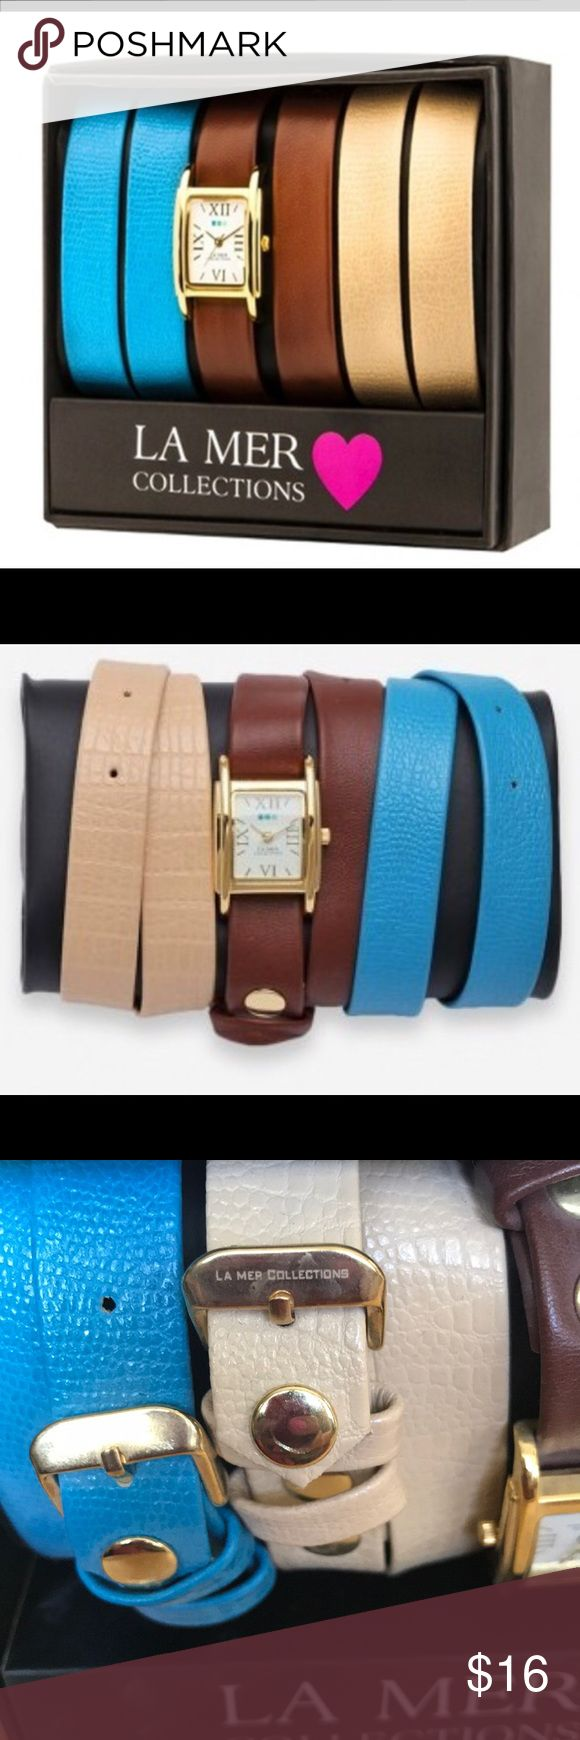 La Mer Collection watch - brown tan blue bands La Mer watch Collection watch special edition 600  DETAILS A chic, gold tone, timepiece for women from La Mer Special Edition Simple Wrap collection is crafted for high-class elegance.  Brand new in a box and needs batteries   💕 La Mer Accessories Watches